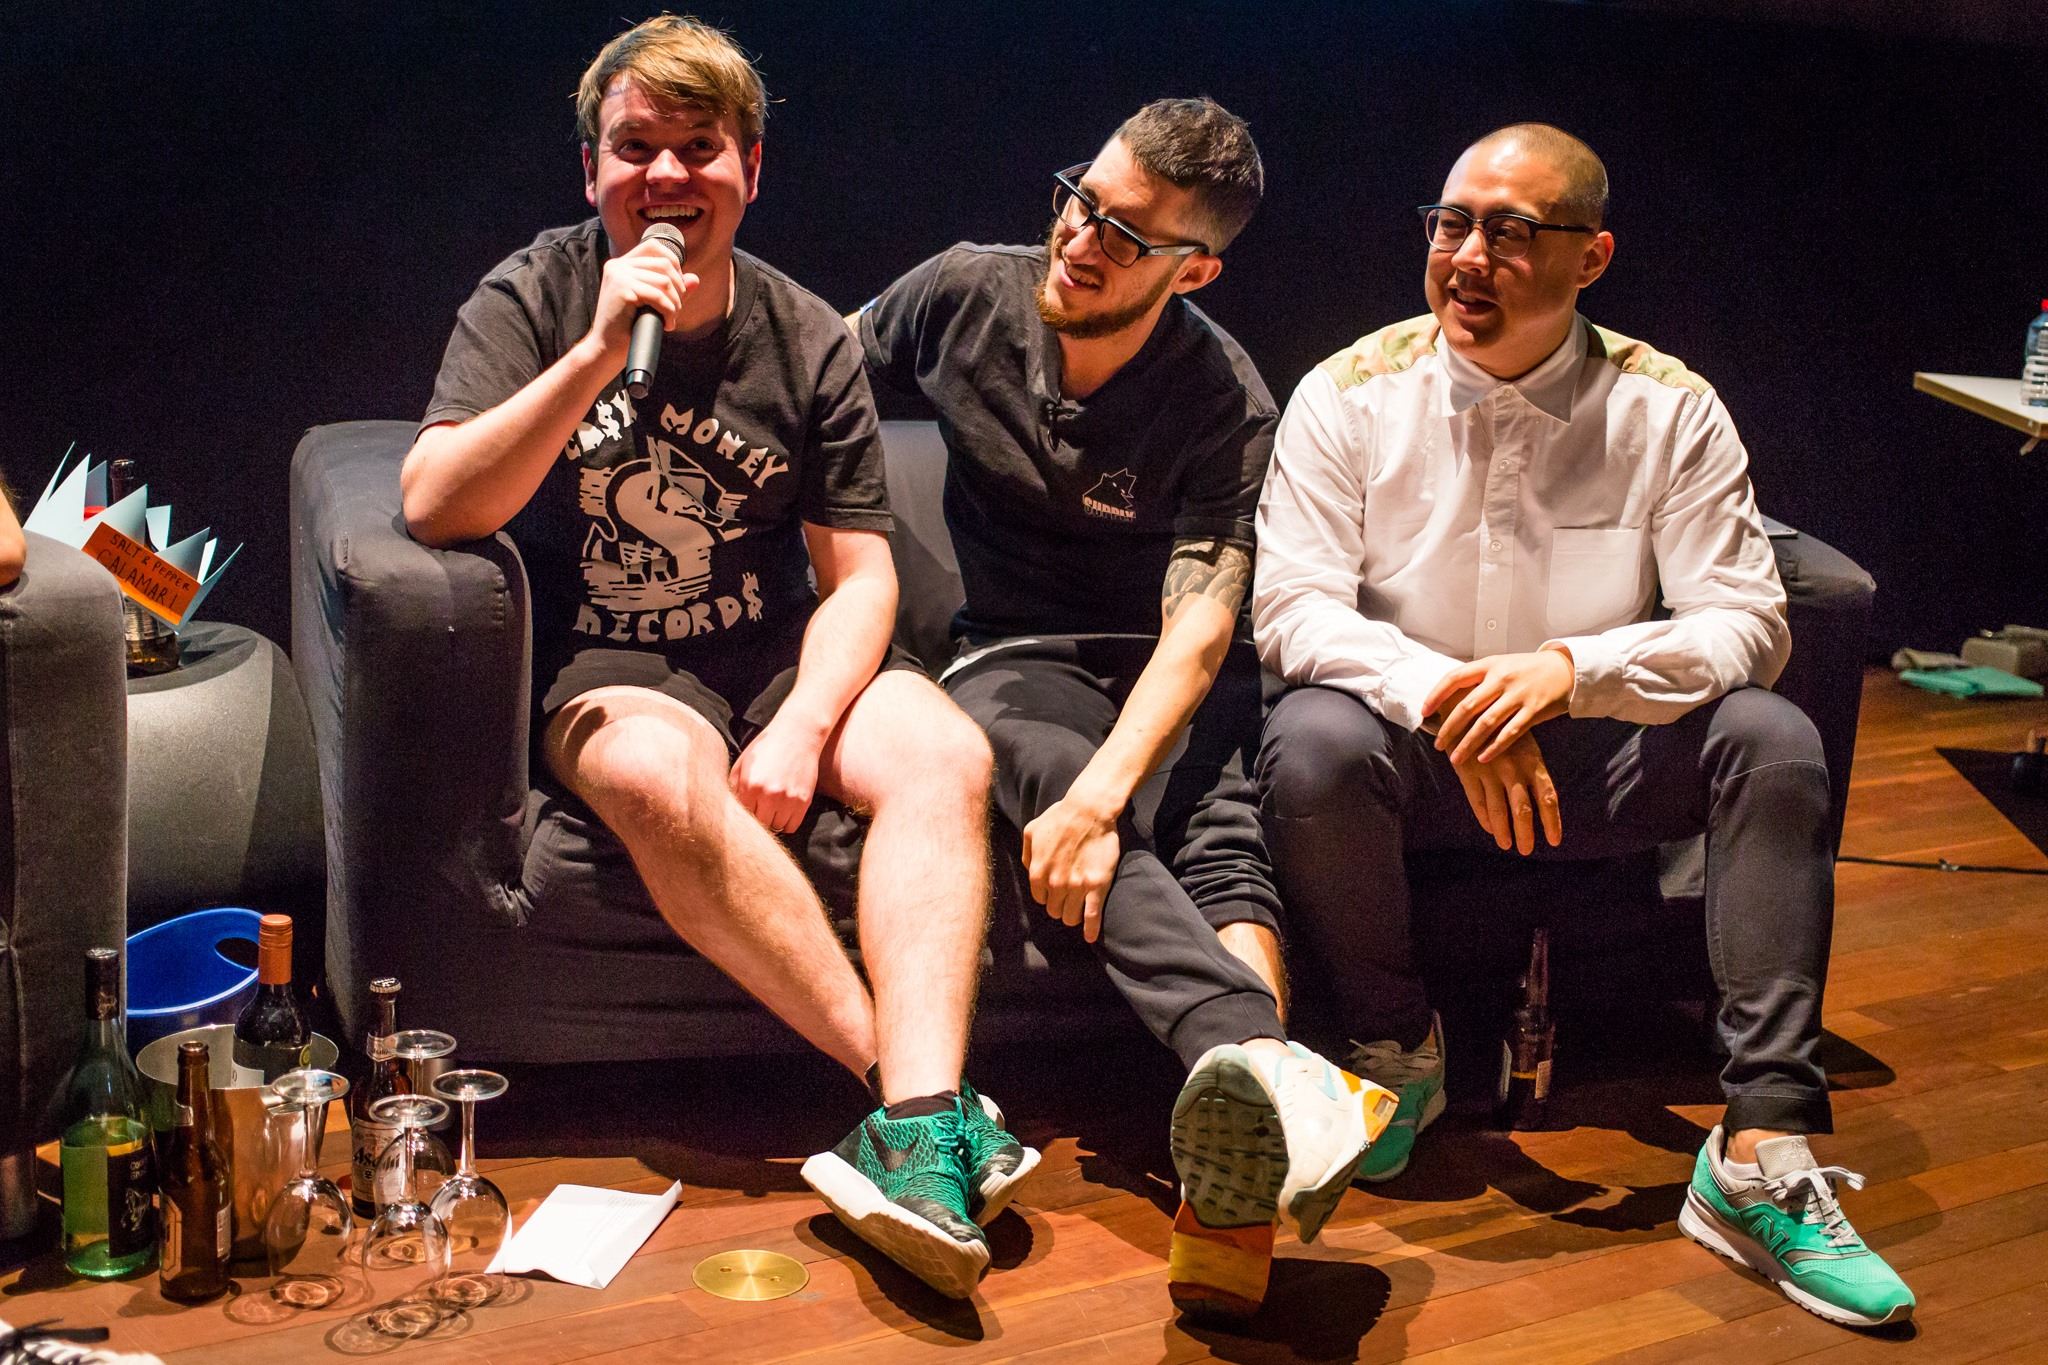 Three men on a couch, one is holding a microphone presenting a live podcast